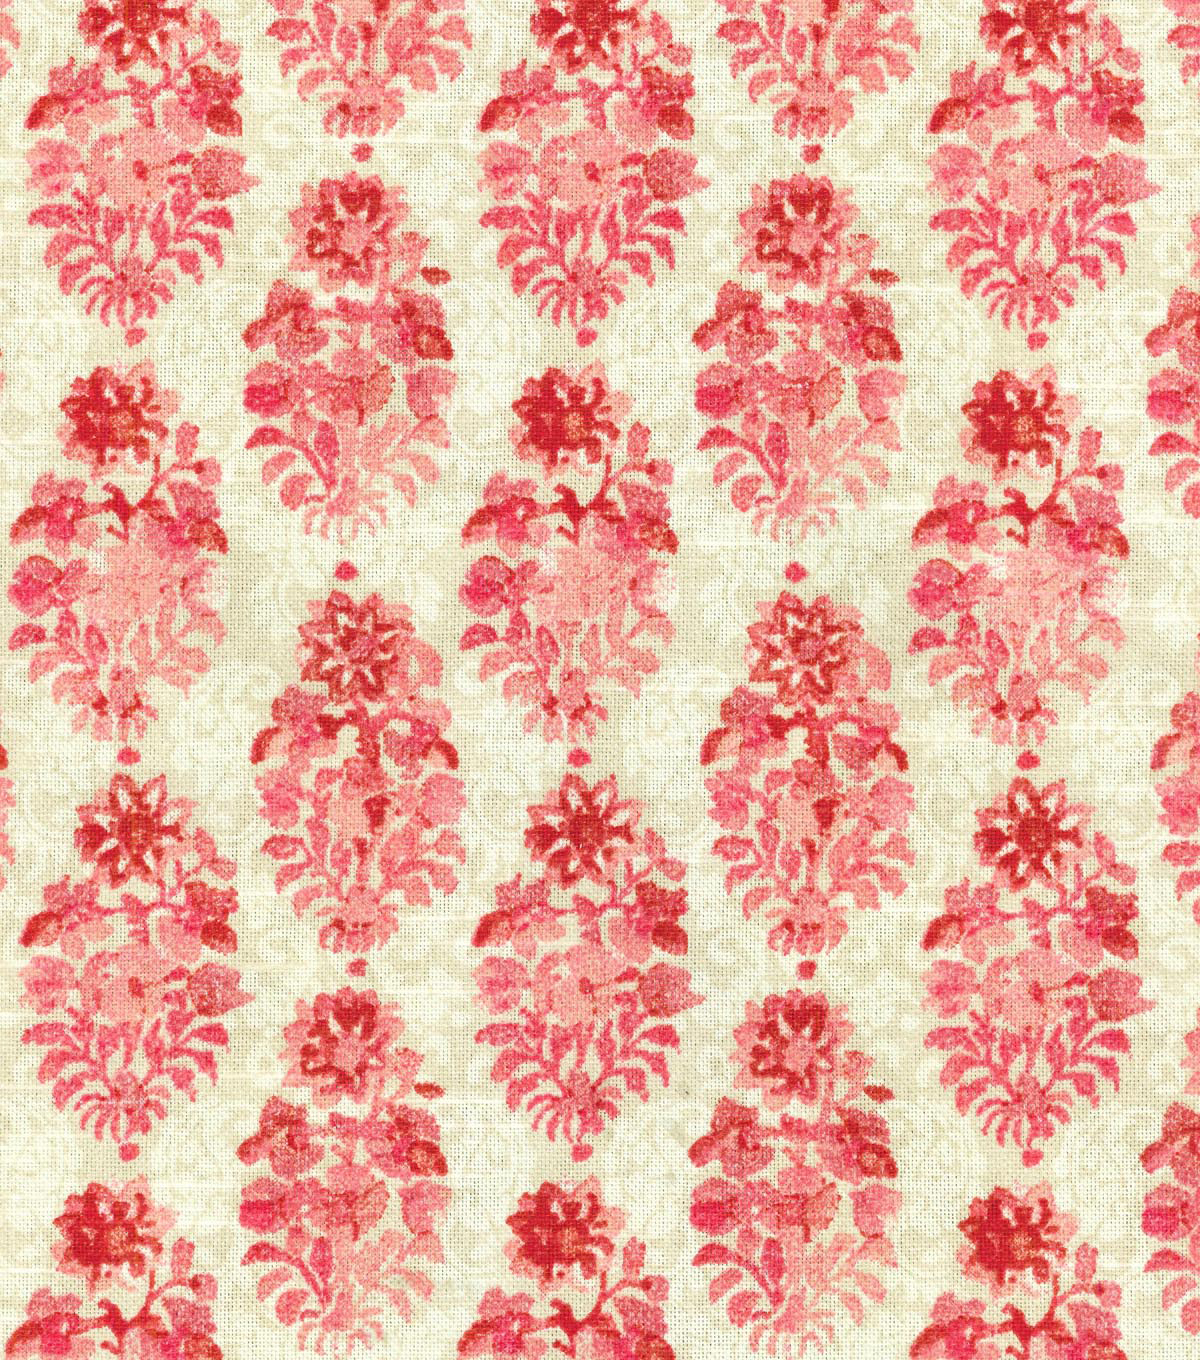 "Home Decor 8""x8"" Swatch Fabric-IMAN Home Petite Batik Blossom"